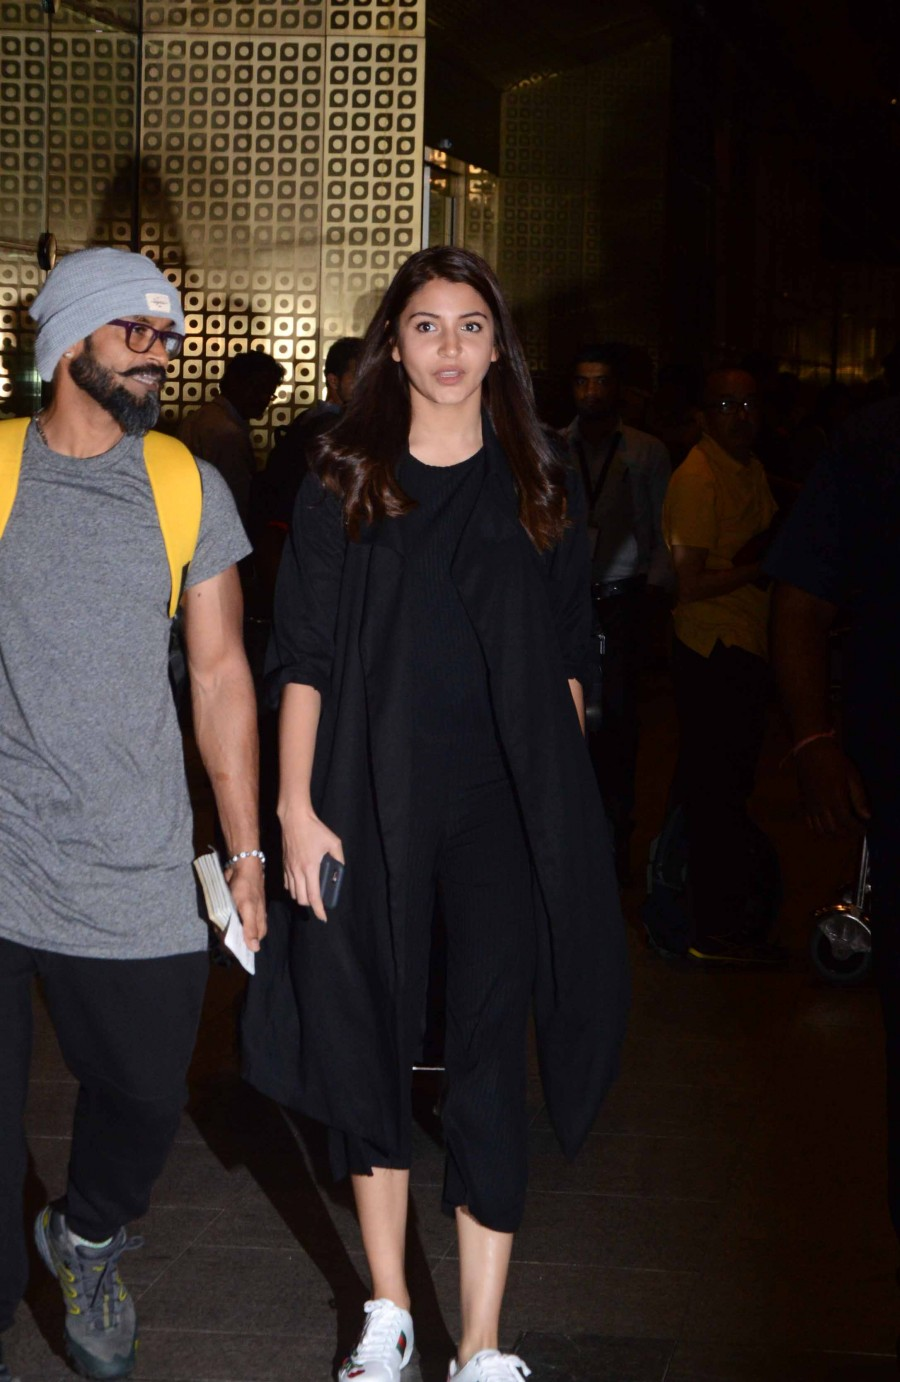 Anushka Sharma,Anushka Sharma returns The Ring's shoot,The Ring,actress Anushka Sharma,Anushka Sharma snapped at Airport,Anushka Sharma latet pics,Anushka Sharma latet imgaes,Anushka Sharma latet photos,Anushka Sharma latet stills,Anushka Sharma late